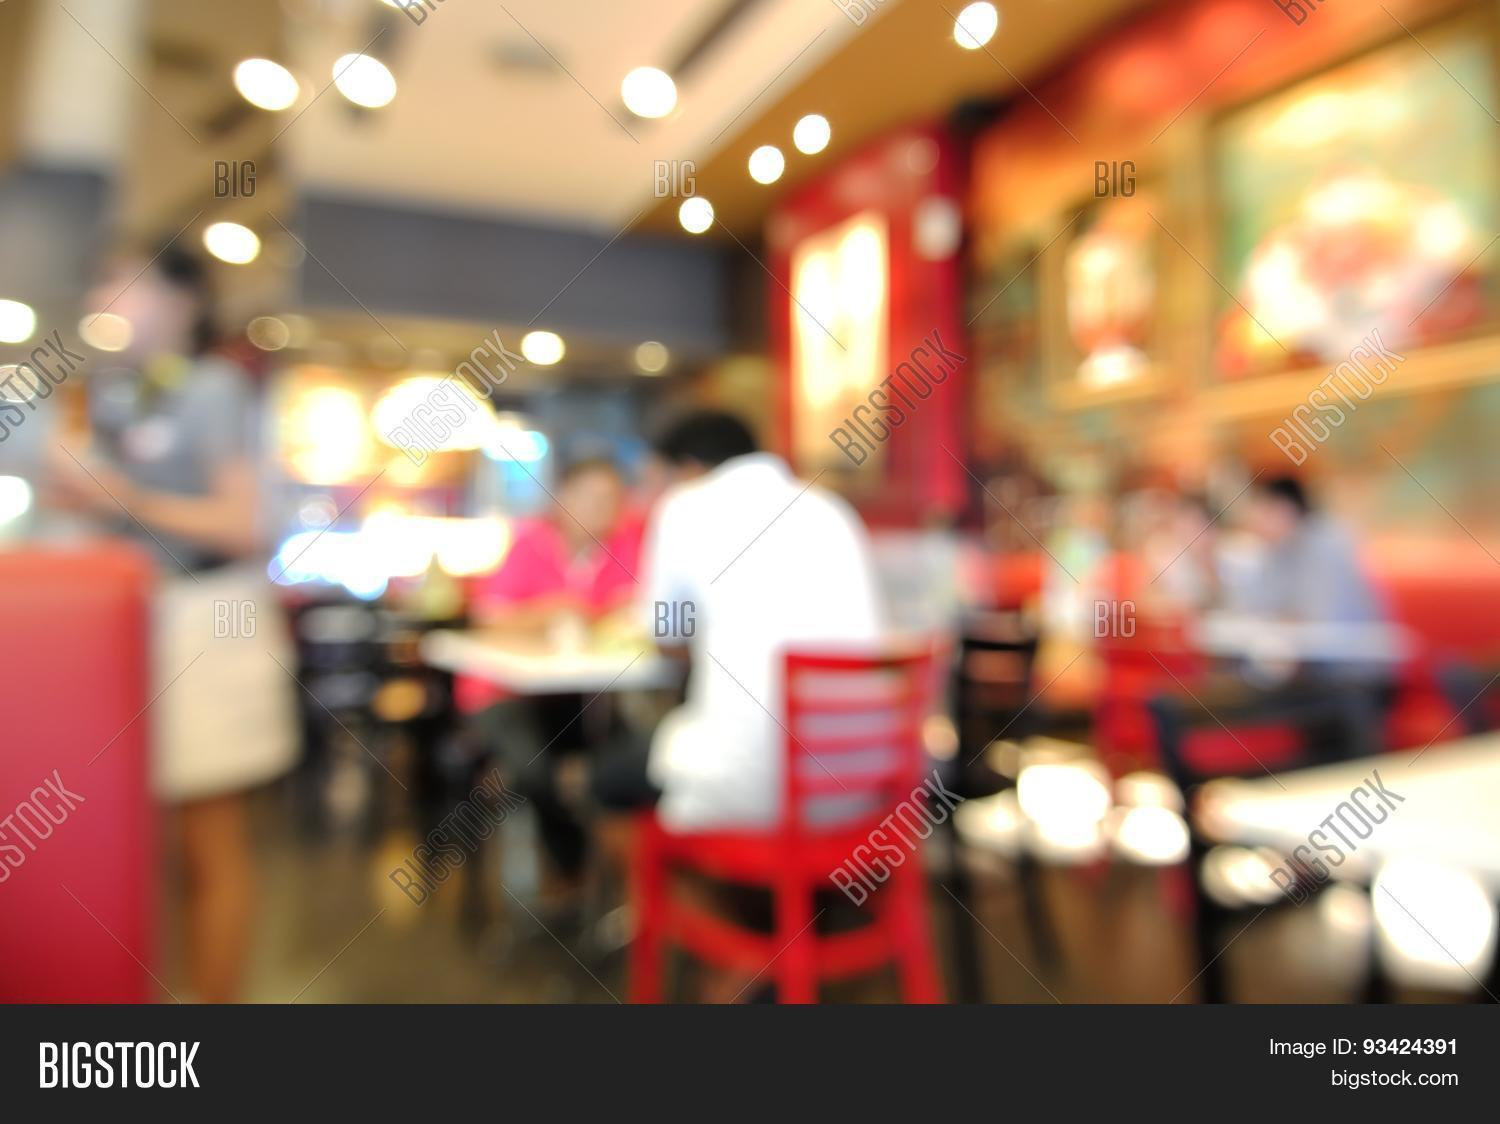 Restaurant Background With People Blur Or Defocus Background Of People Eating In Restaurant Stock